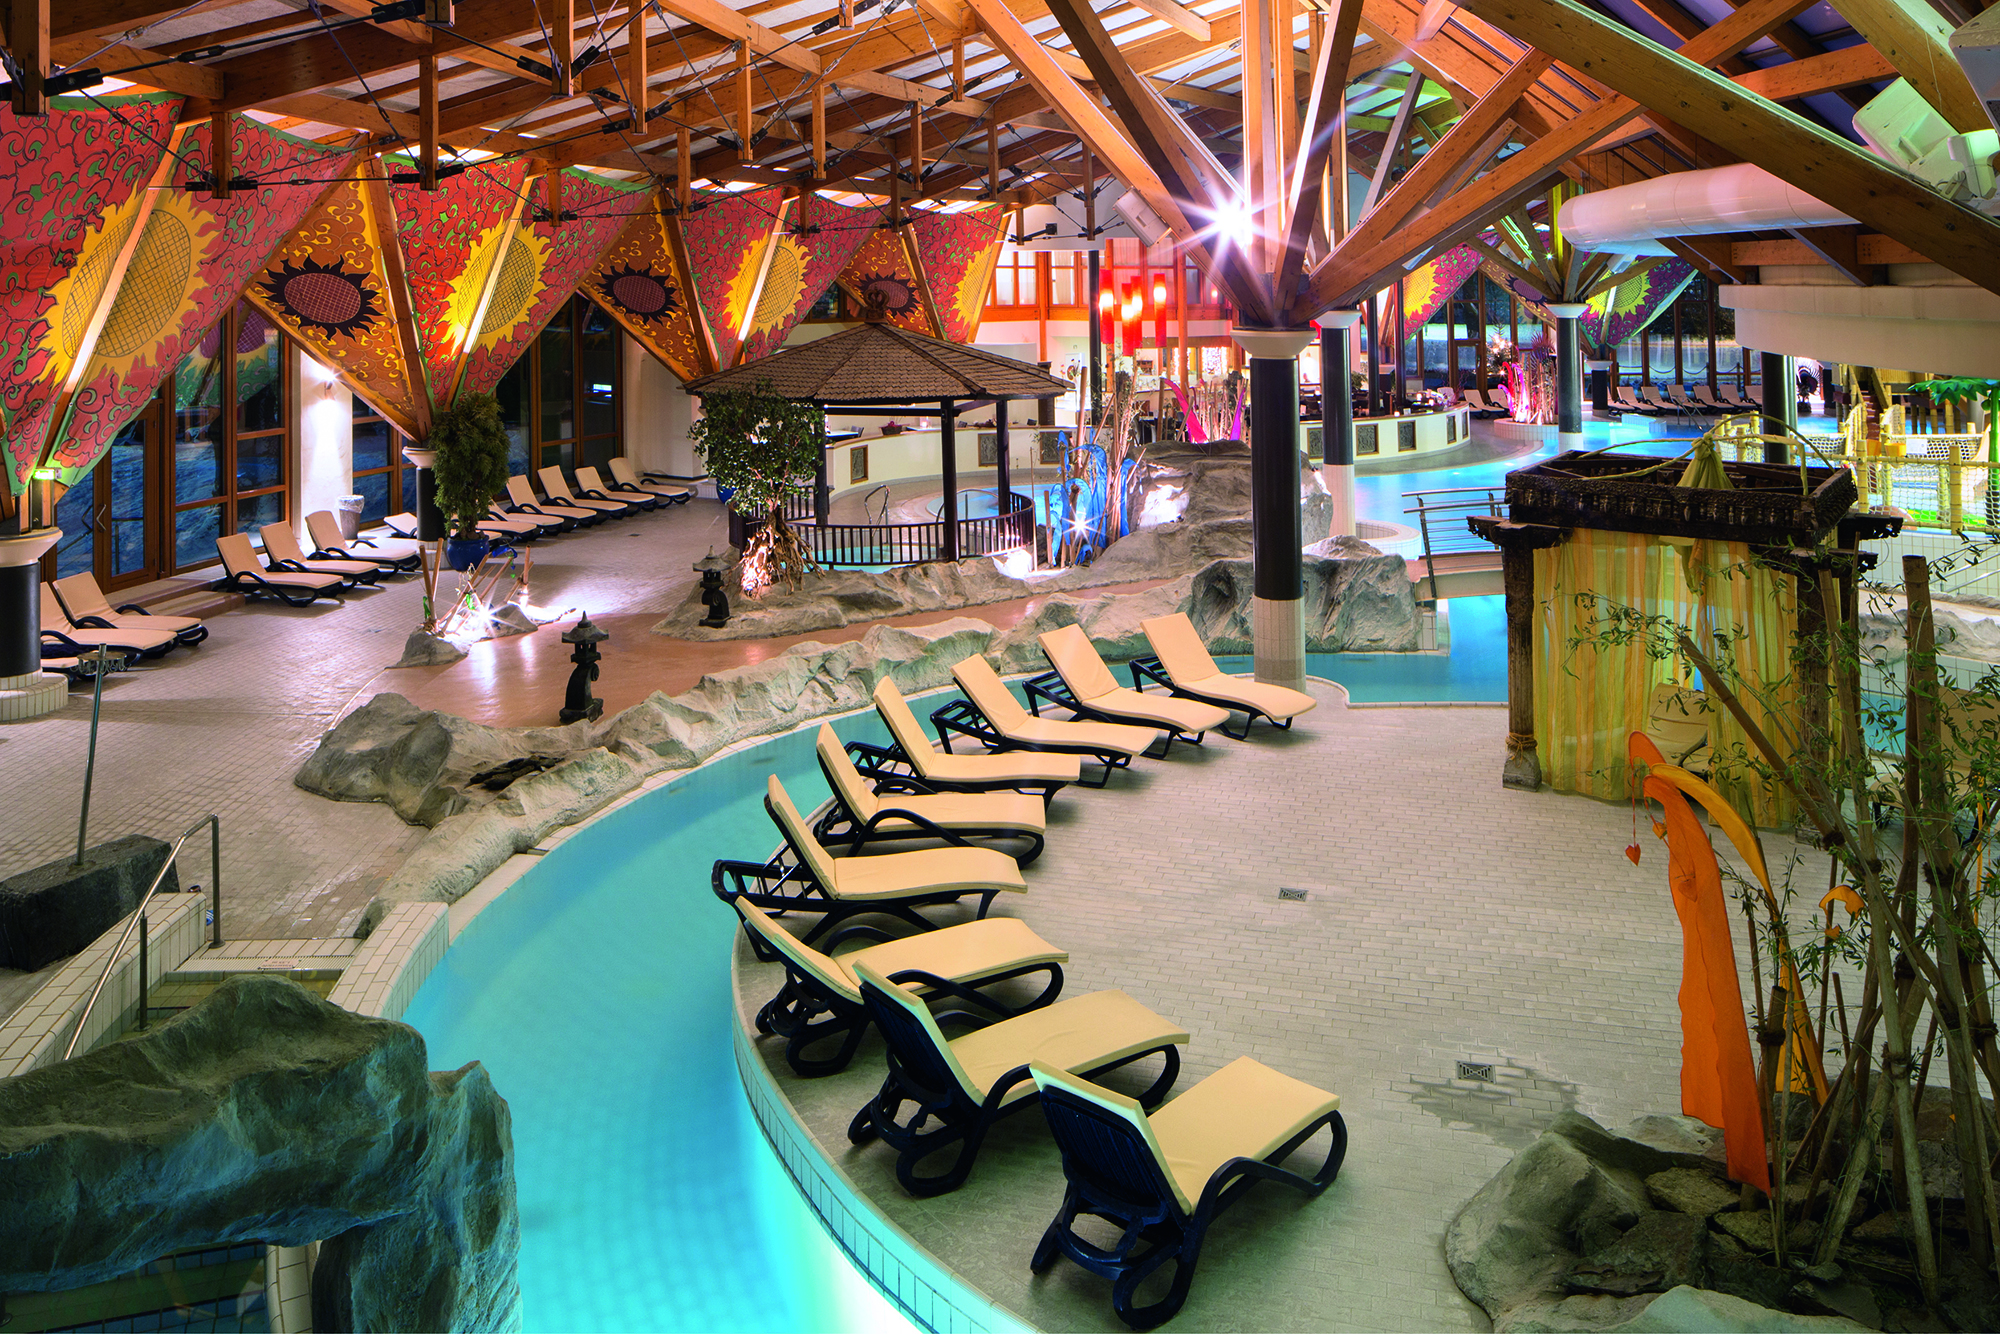 Sauna Bali Therme Wellness Bad Oeynhausen: 4* Hotel + 1 Tag Bali Therme - 49